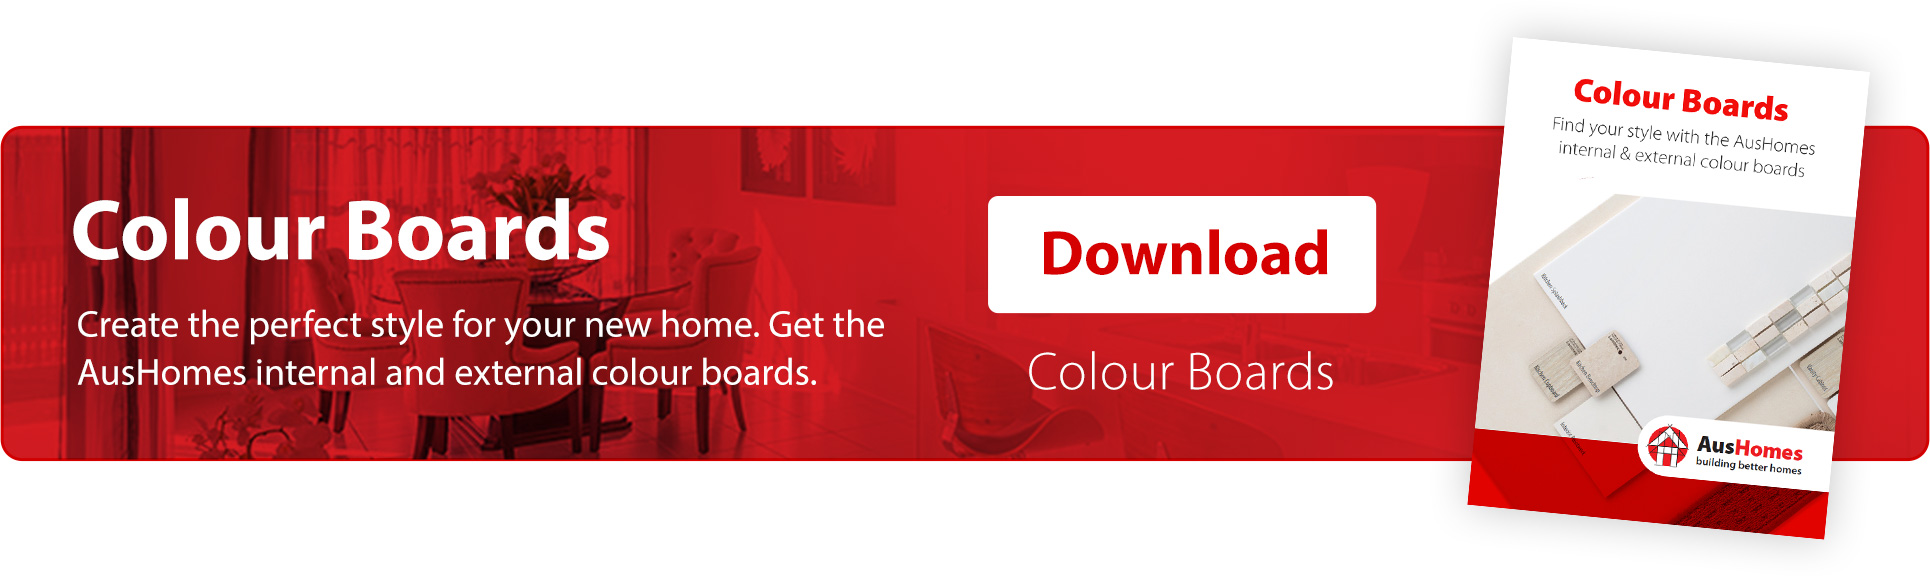 View the Colour Boards